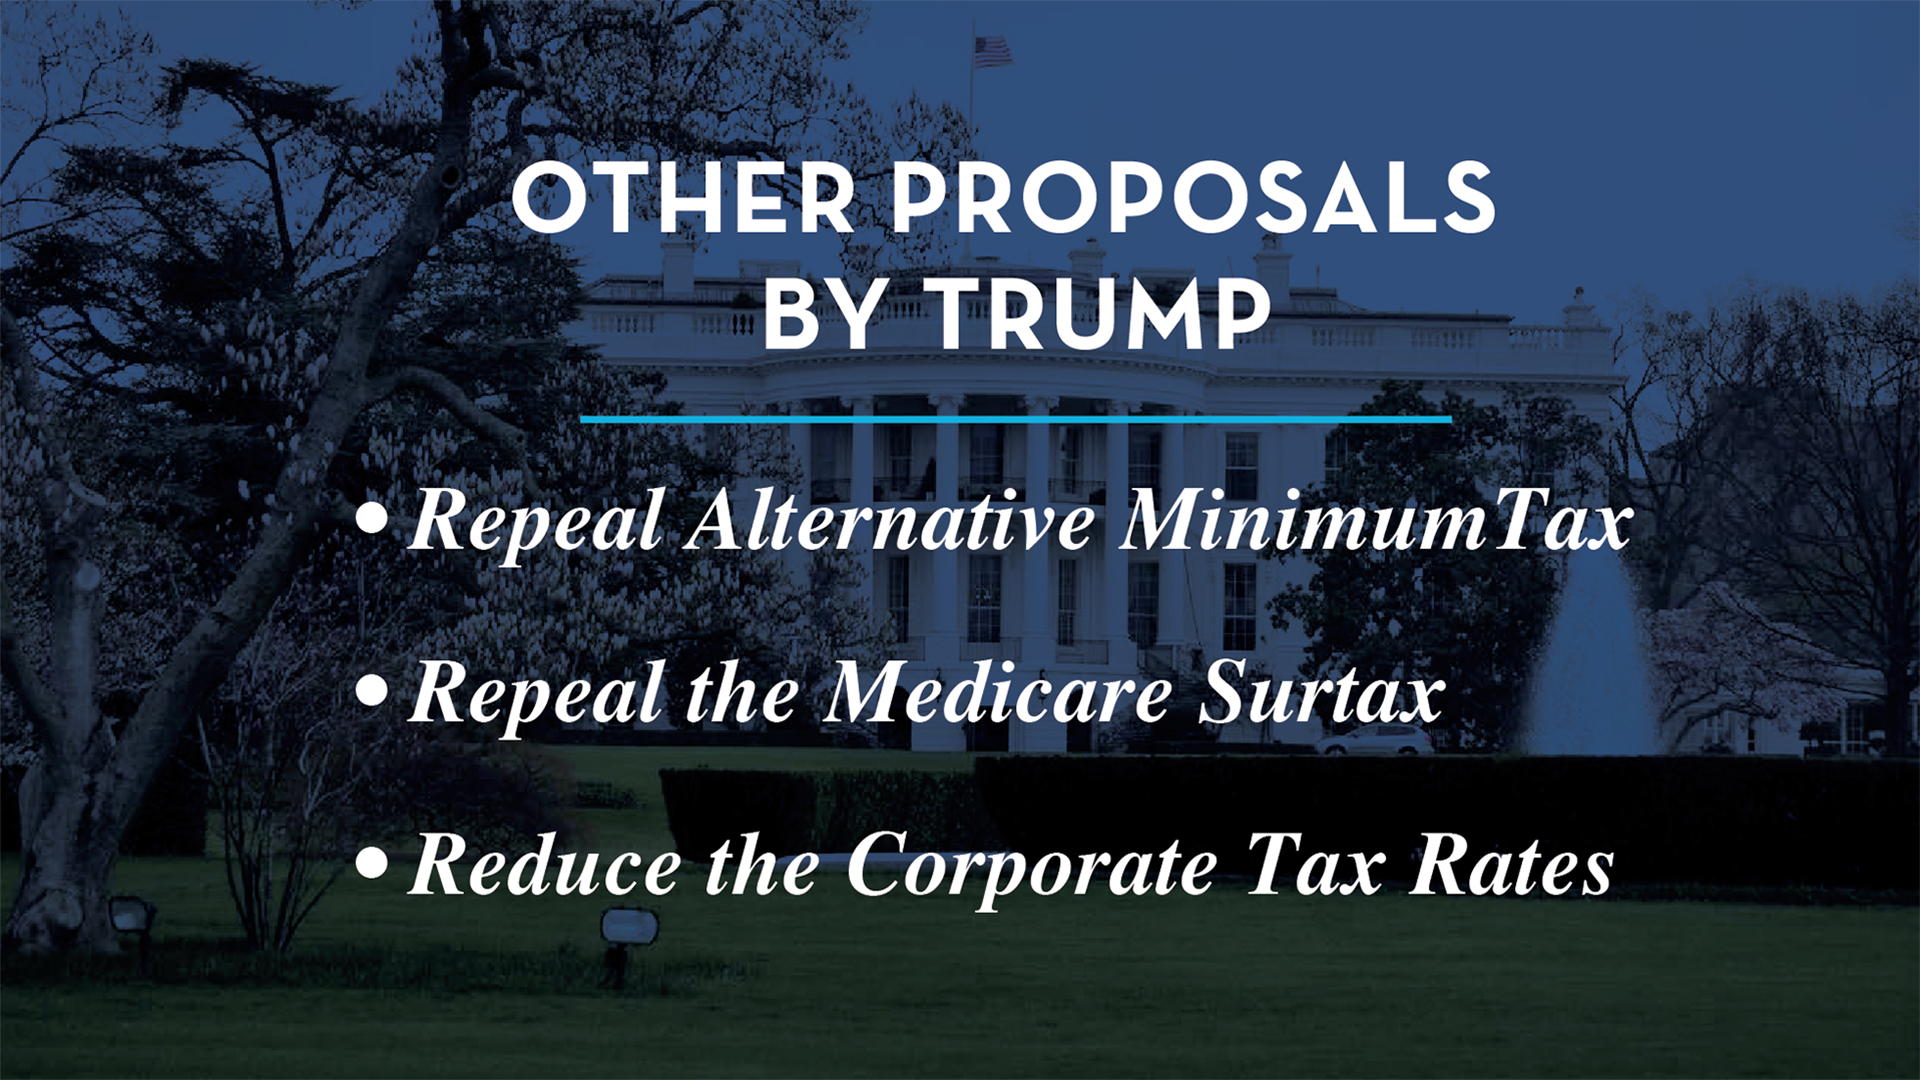 other proposals by trump slide 8